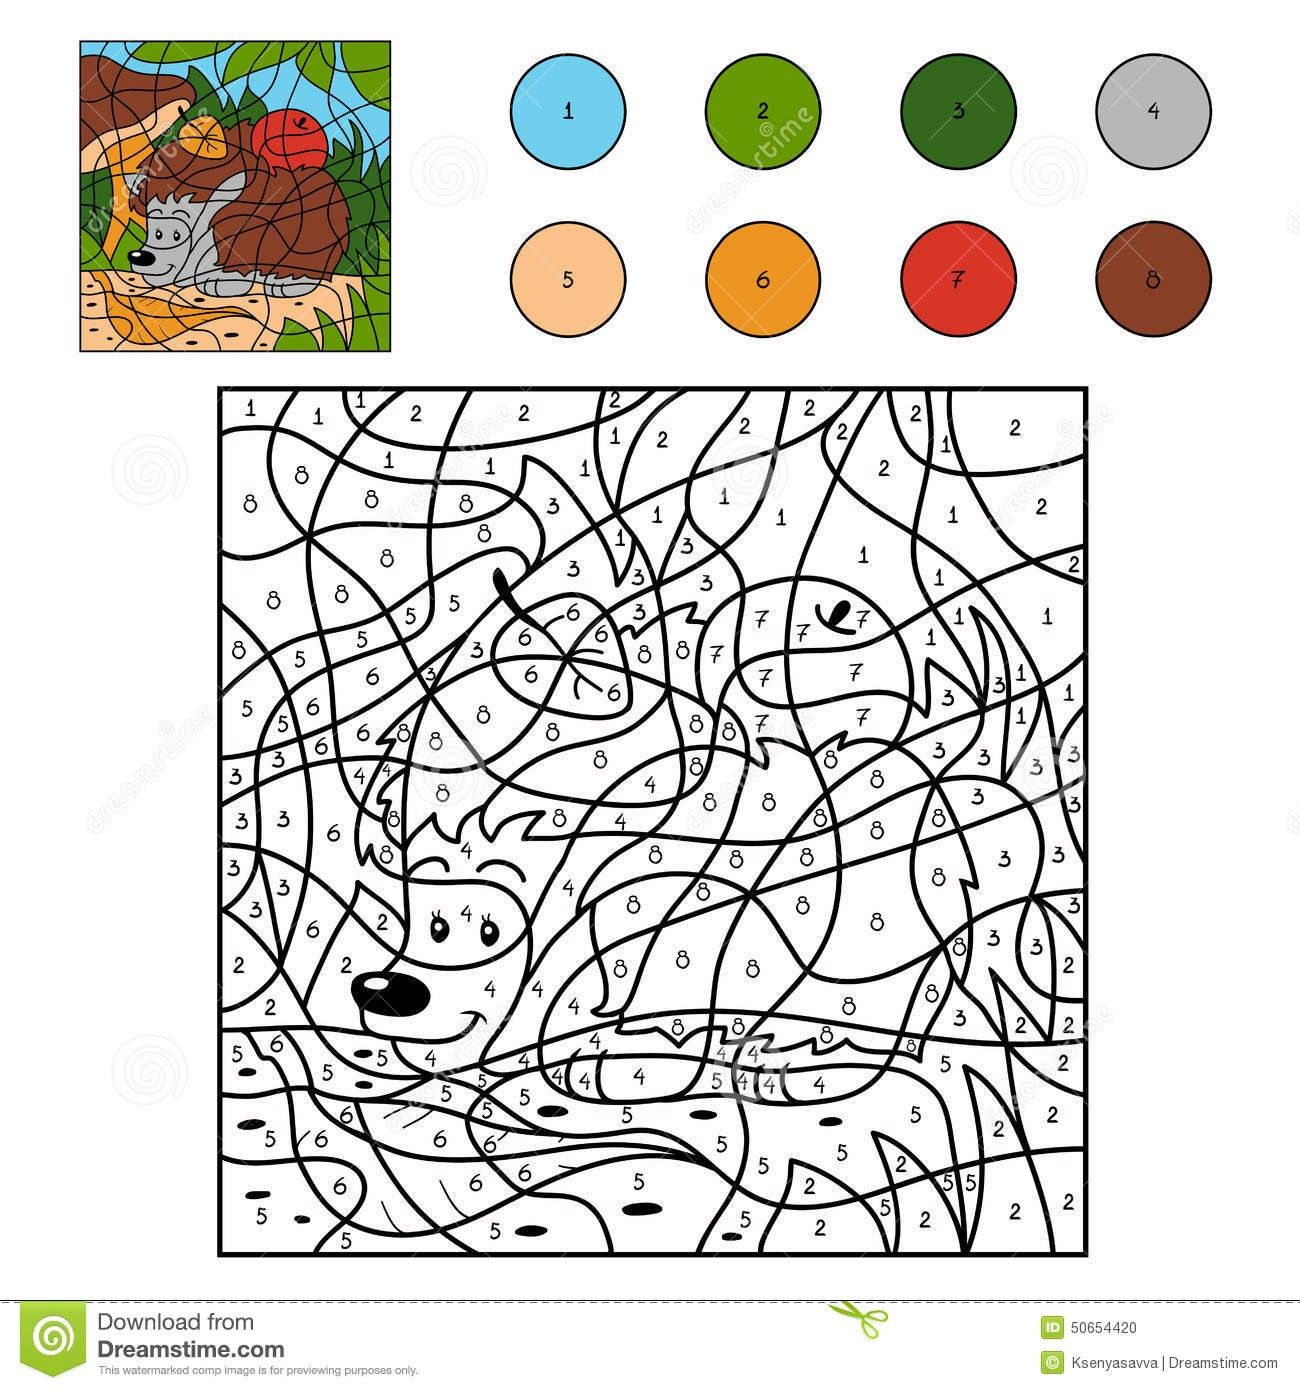 Pin By Ingrid Hirz On Classroom Lovables Summer Coloring Pages Free Printable Coloring Pages Coloring Pages